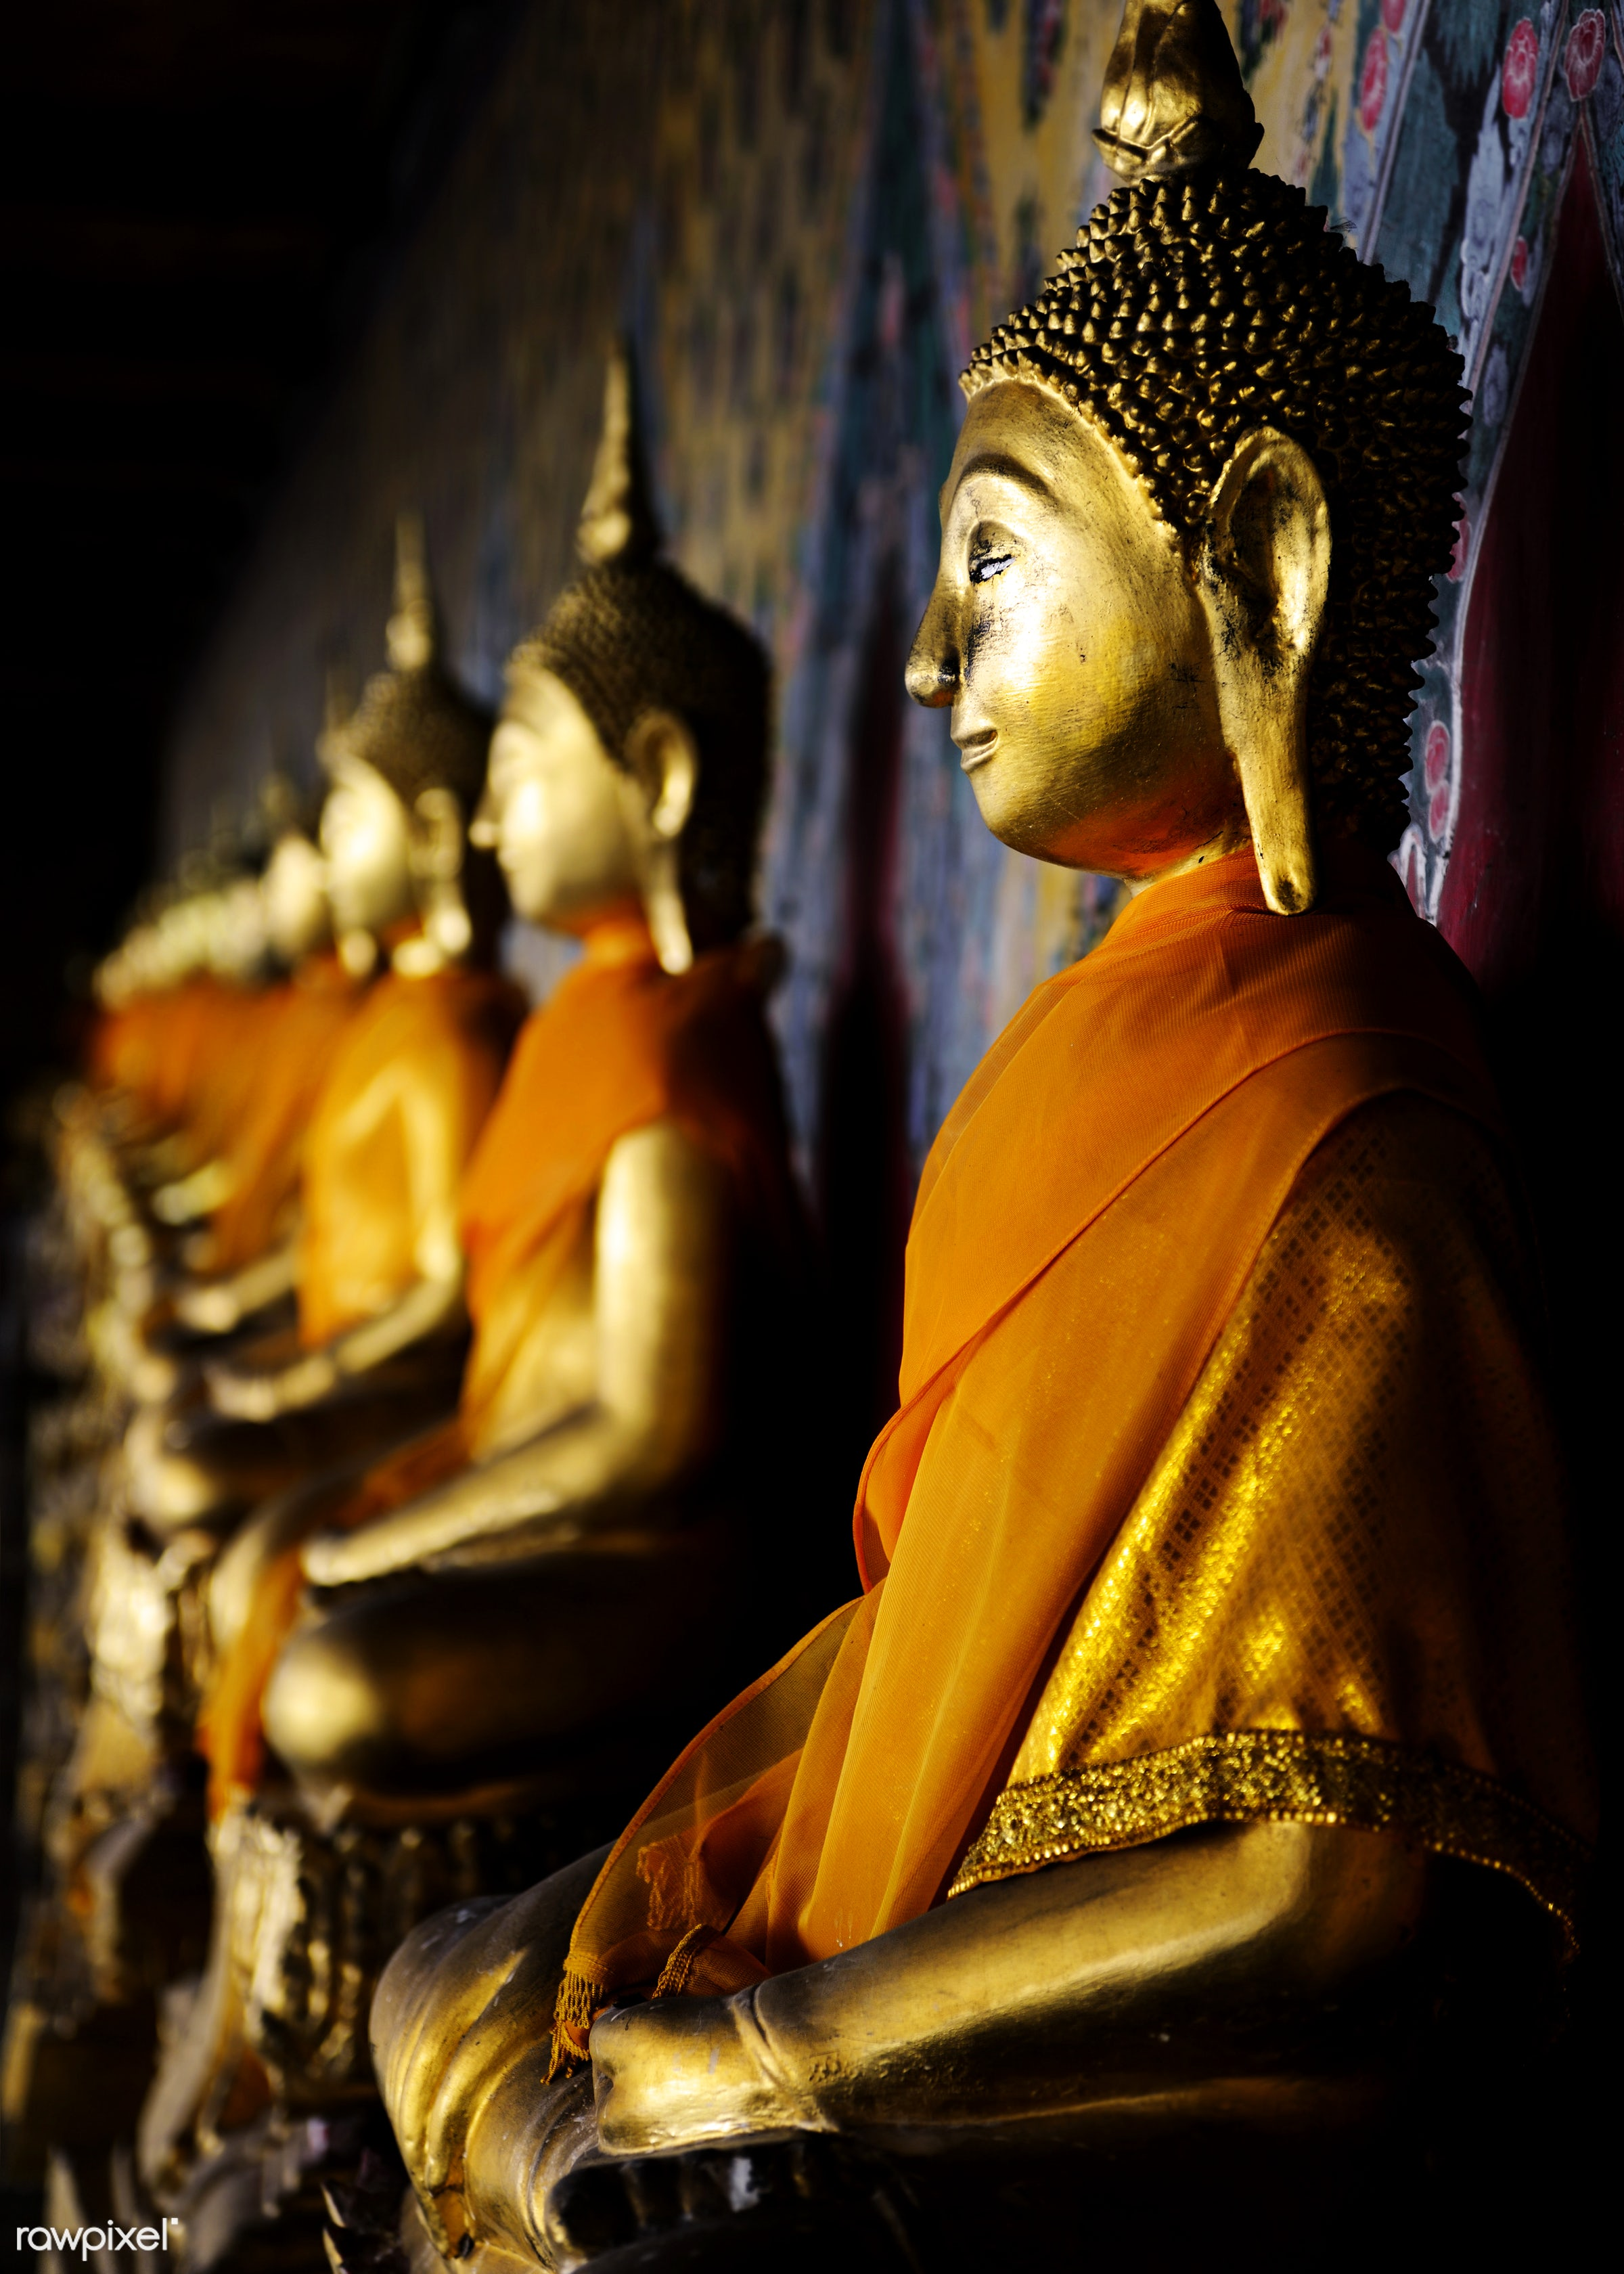 asia, asian, bangkok, belief, believe, bronze, buddha, buddhism, culture, famous place, gold, nobody, object, pray,...